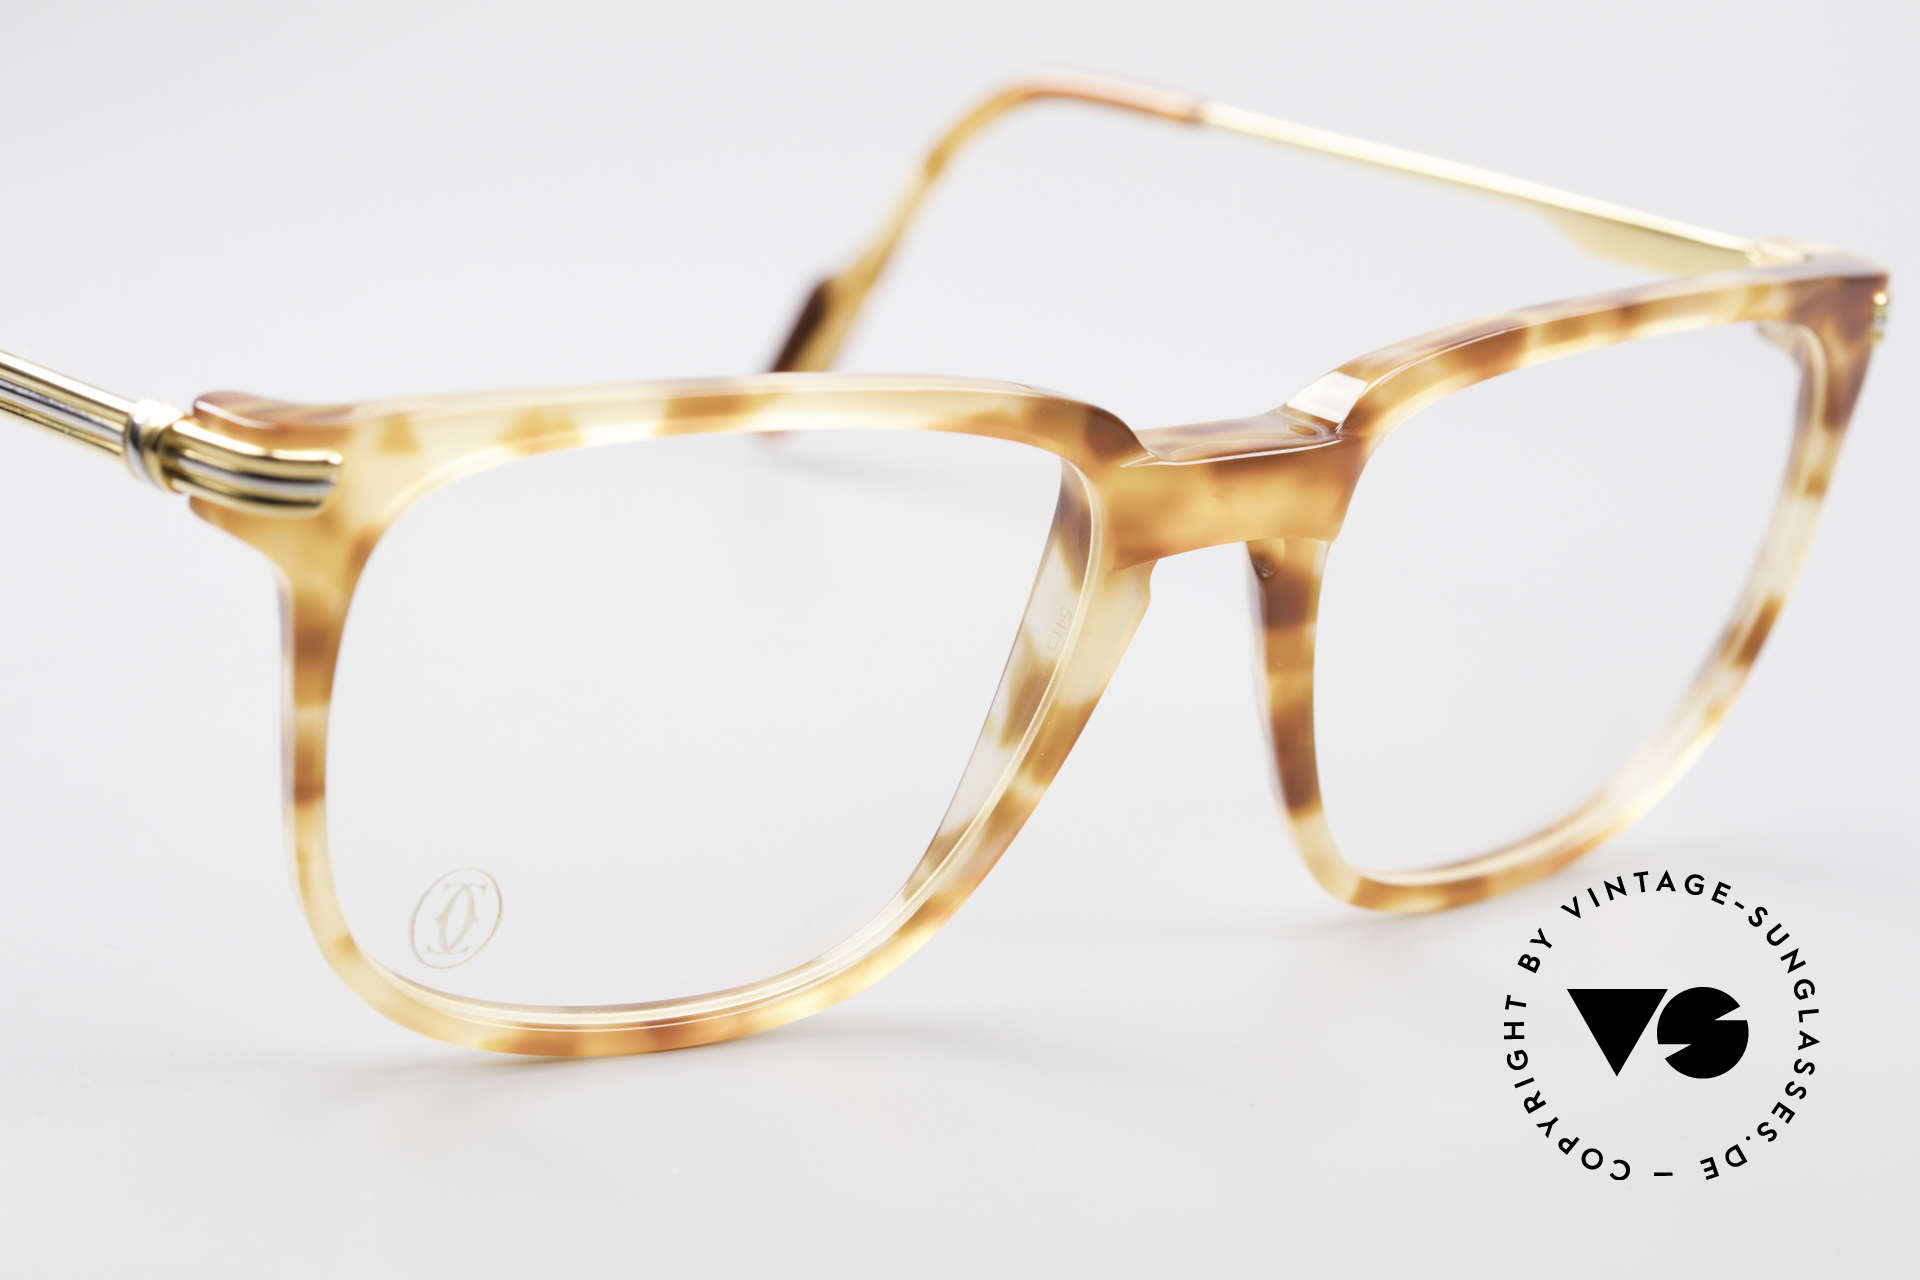 Cartier Reflet 90's Luxury Eyeglass-Frame, never worn (incl. orig. Cartier packing and paperwork), Made for Men and Women